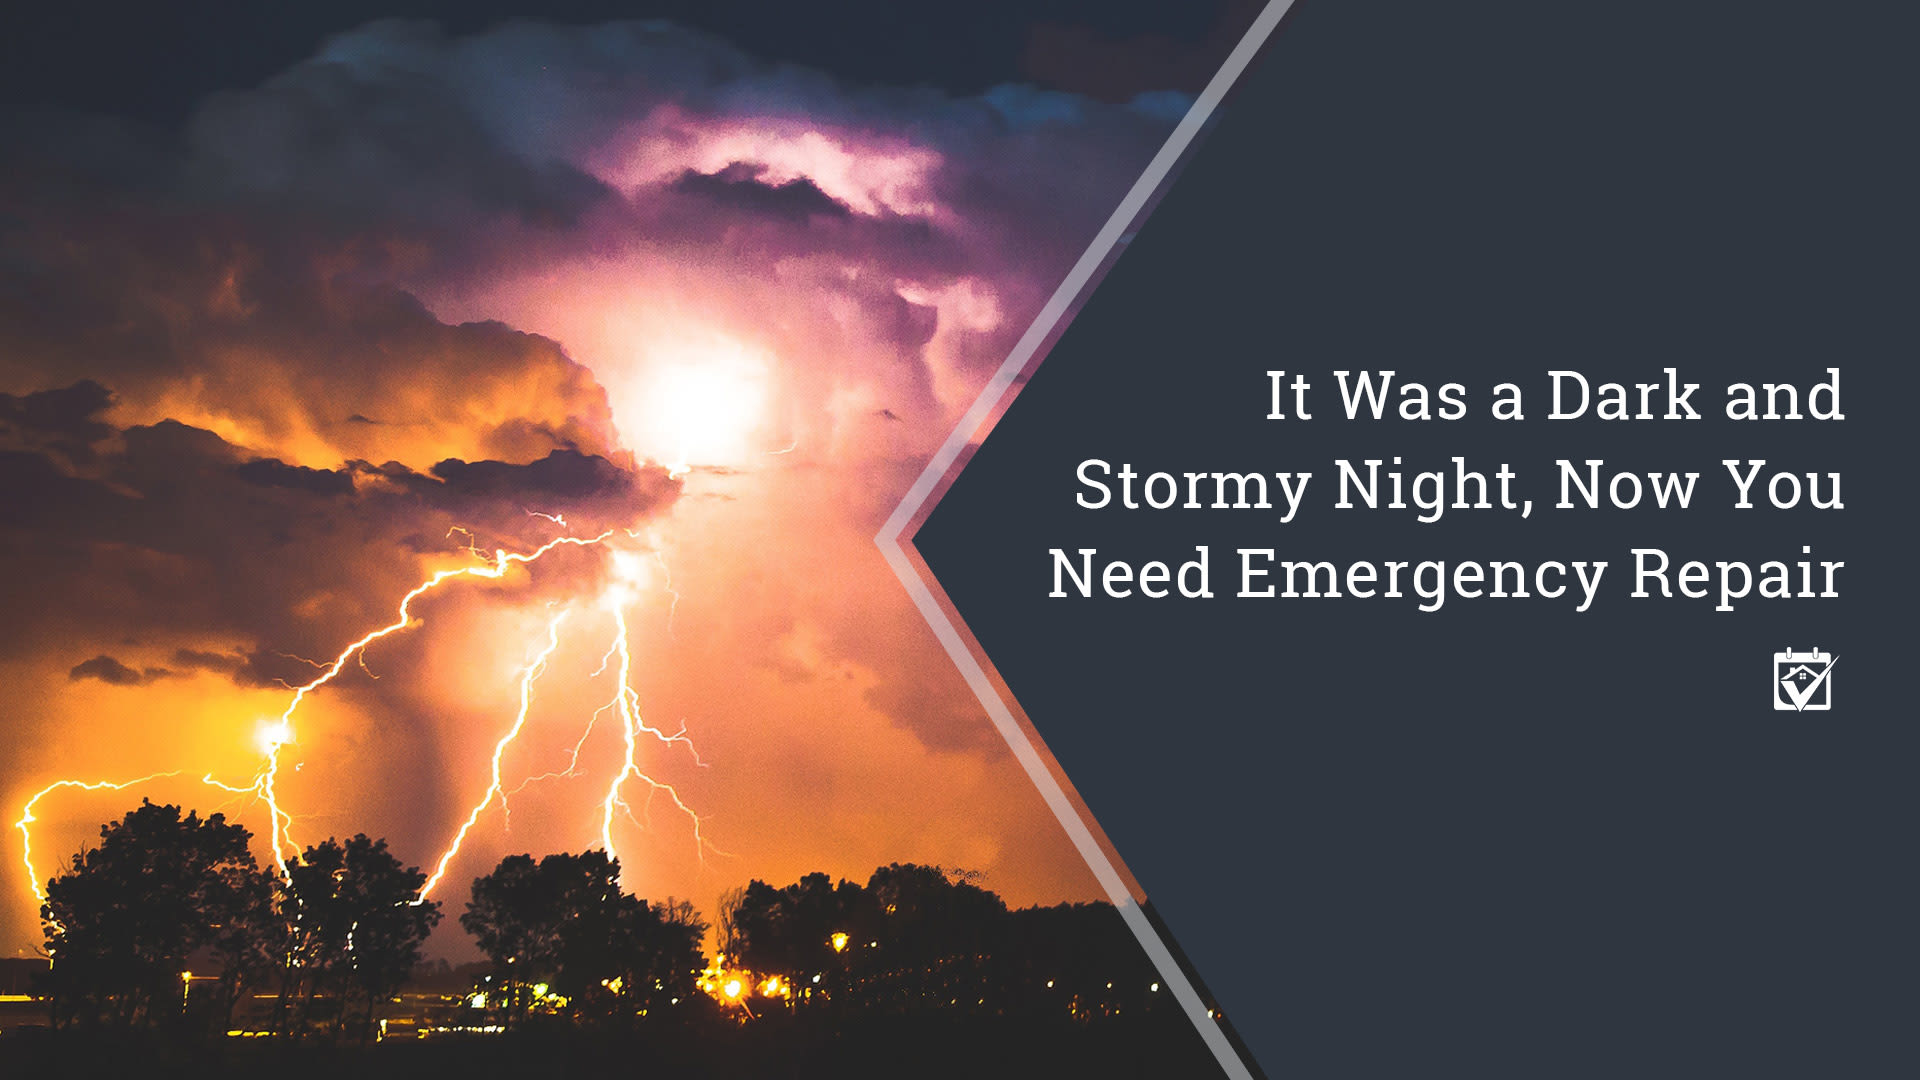 It Was A Dark and Stormy Night, Now You Need Emergency Repair